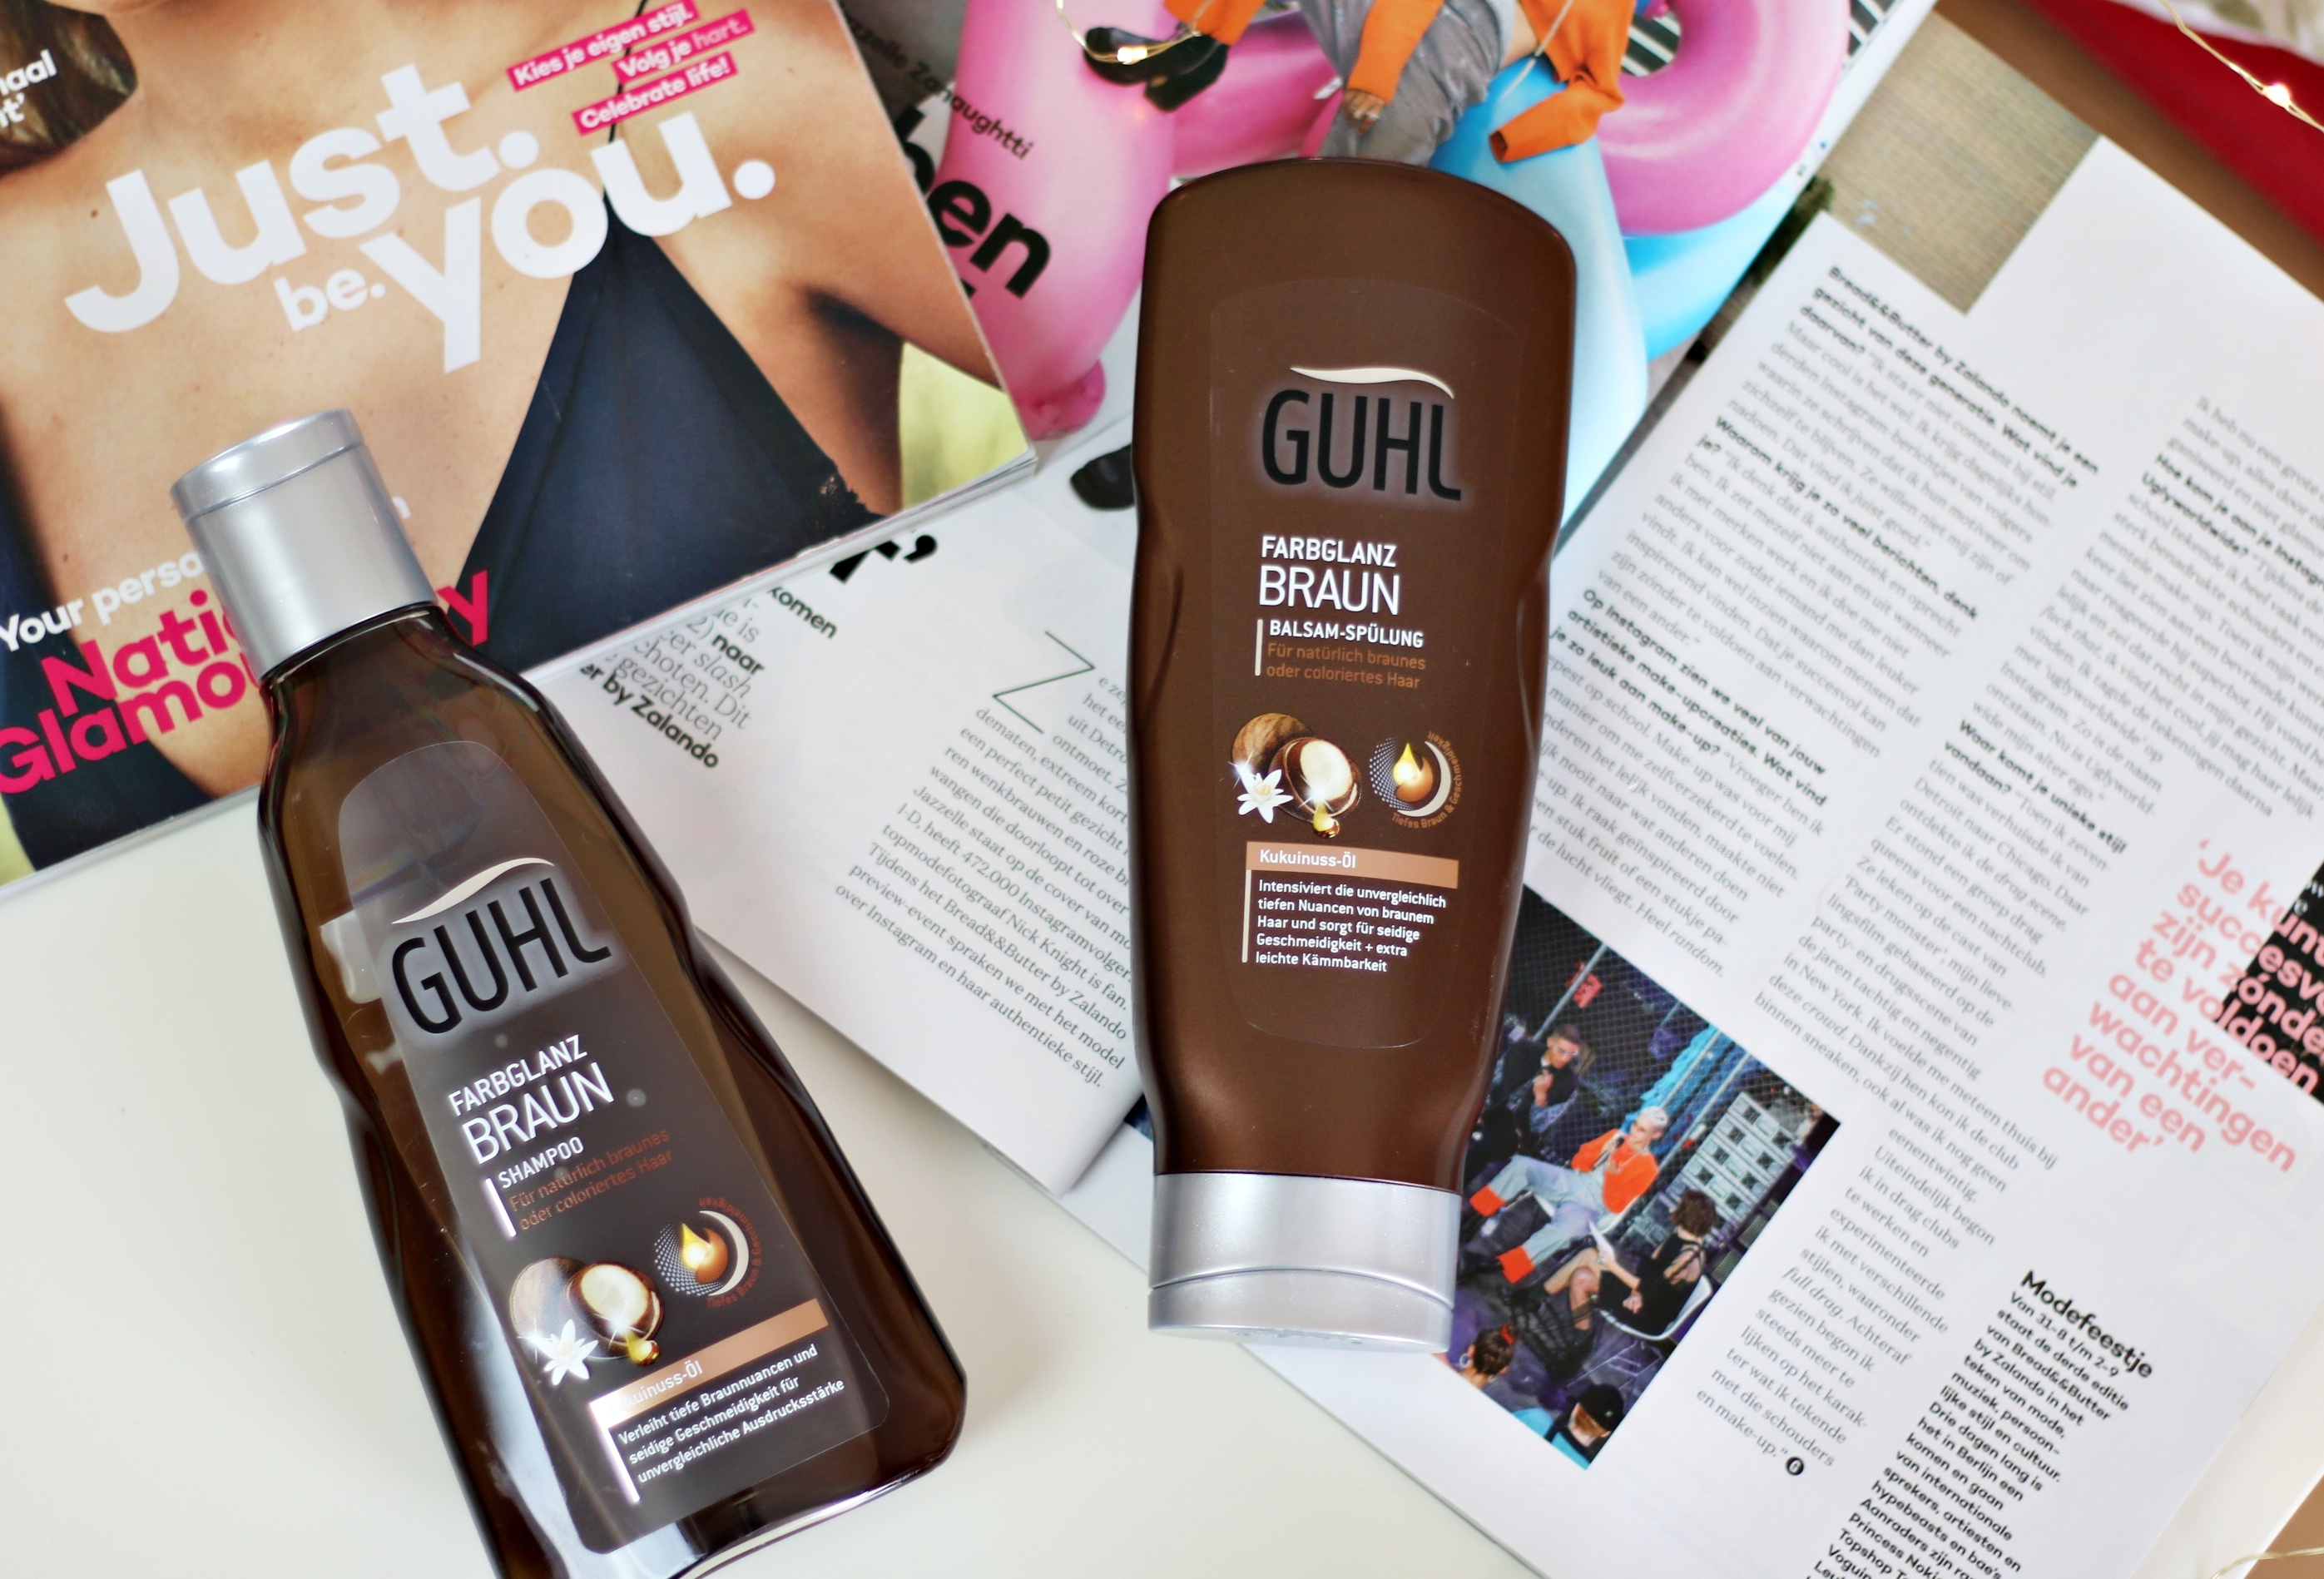 Making The Most Of Your Shiny Brown Hair With The Guhl Shampoo & Conditioner For Brown Hair!